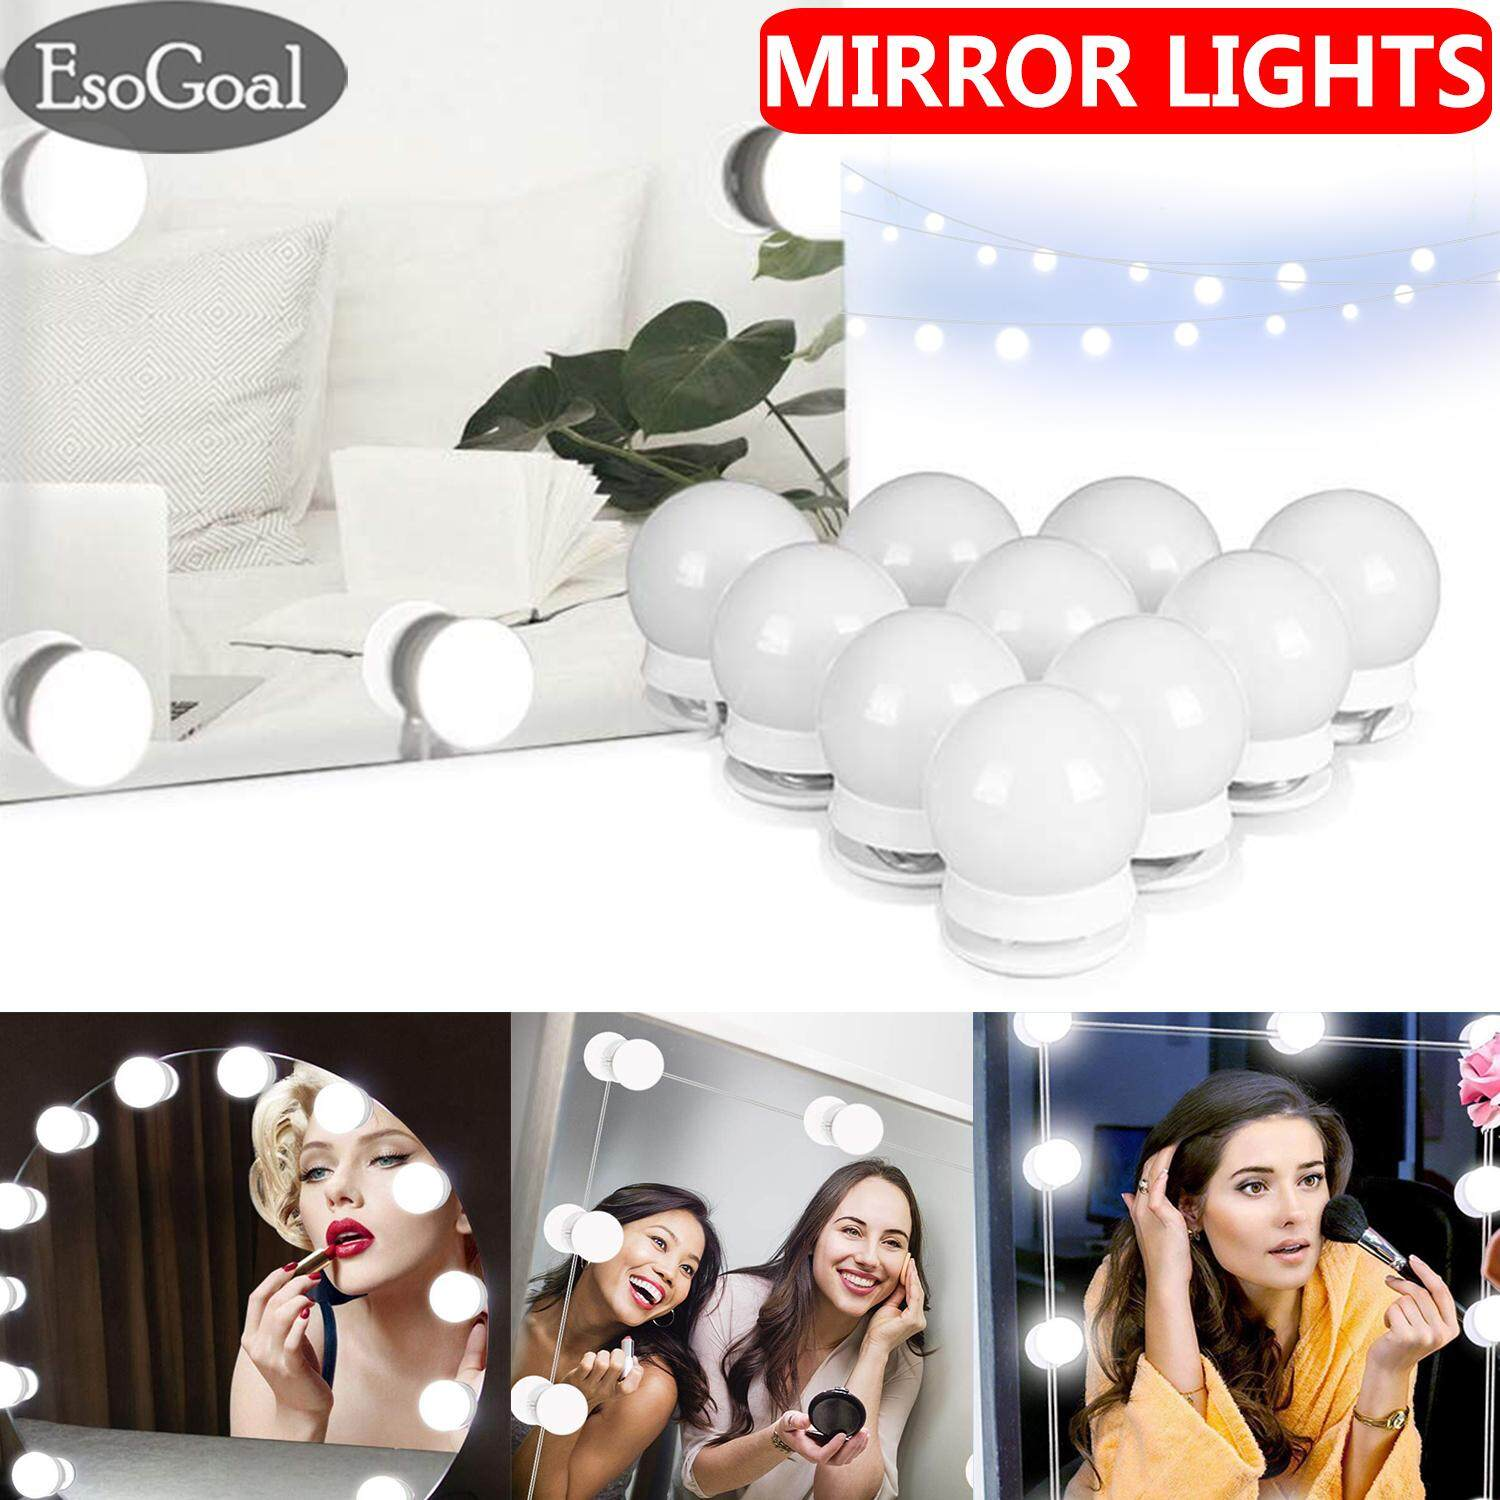 EsoGoal Mirror Lights Vanity Mirror Light Make Up Mirror LED Light Lamp Kit Makeup Mirror Light Hollywood Style Lighting Fixture Strip LED Bulb Mirror Light for Makeup Vanity Dressing Table Philippines